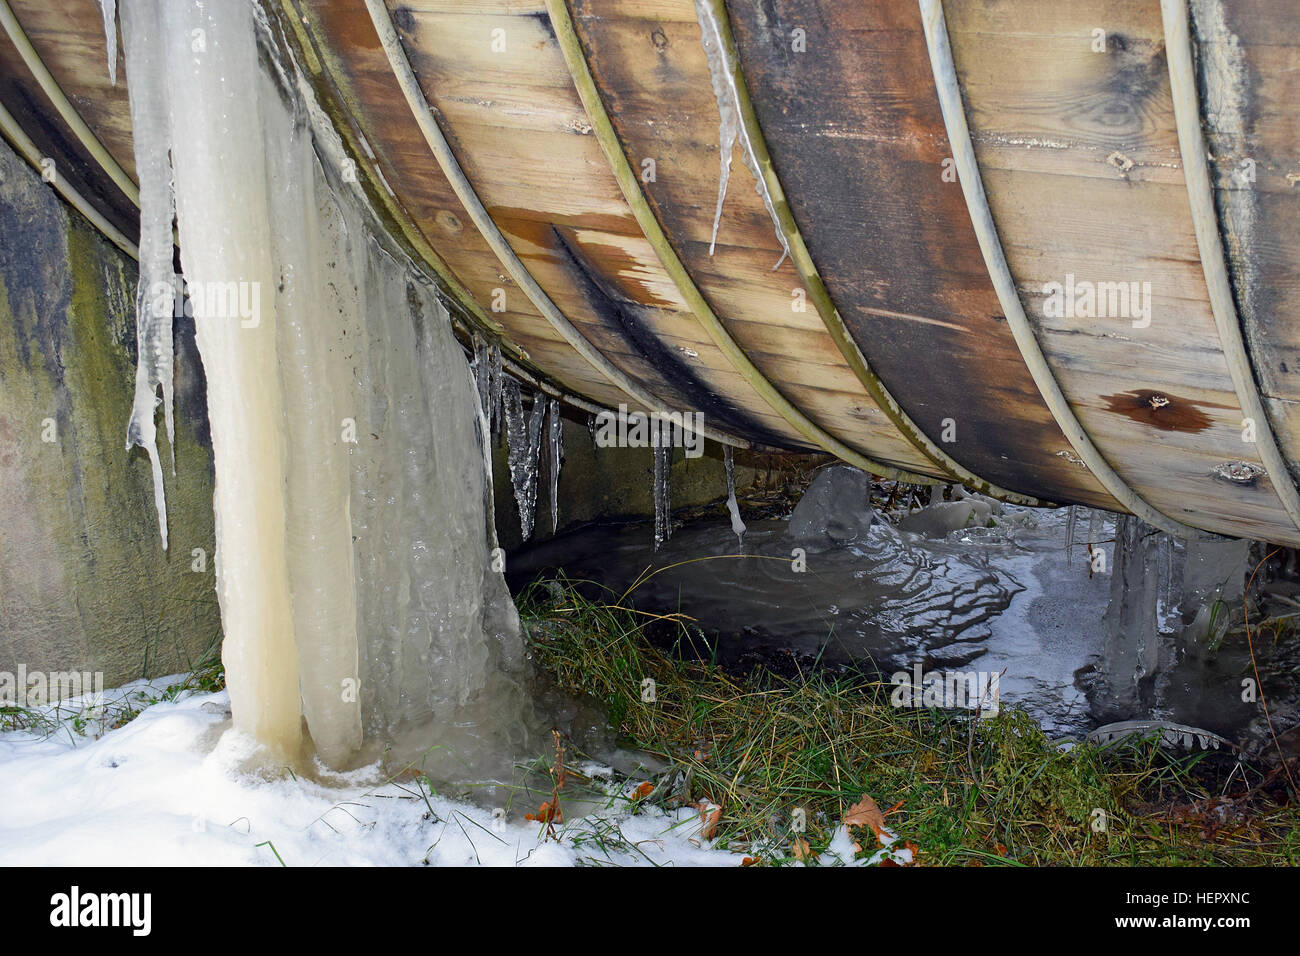 Leaking old wooden pipeline. - Stock Image